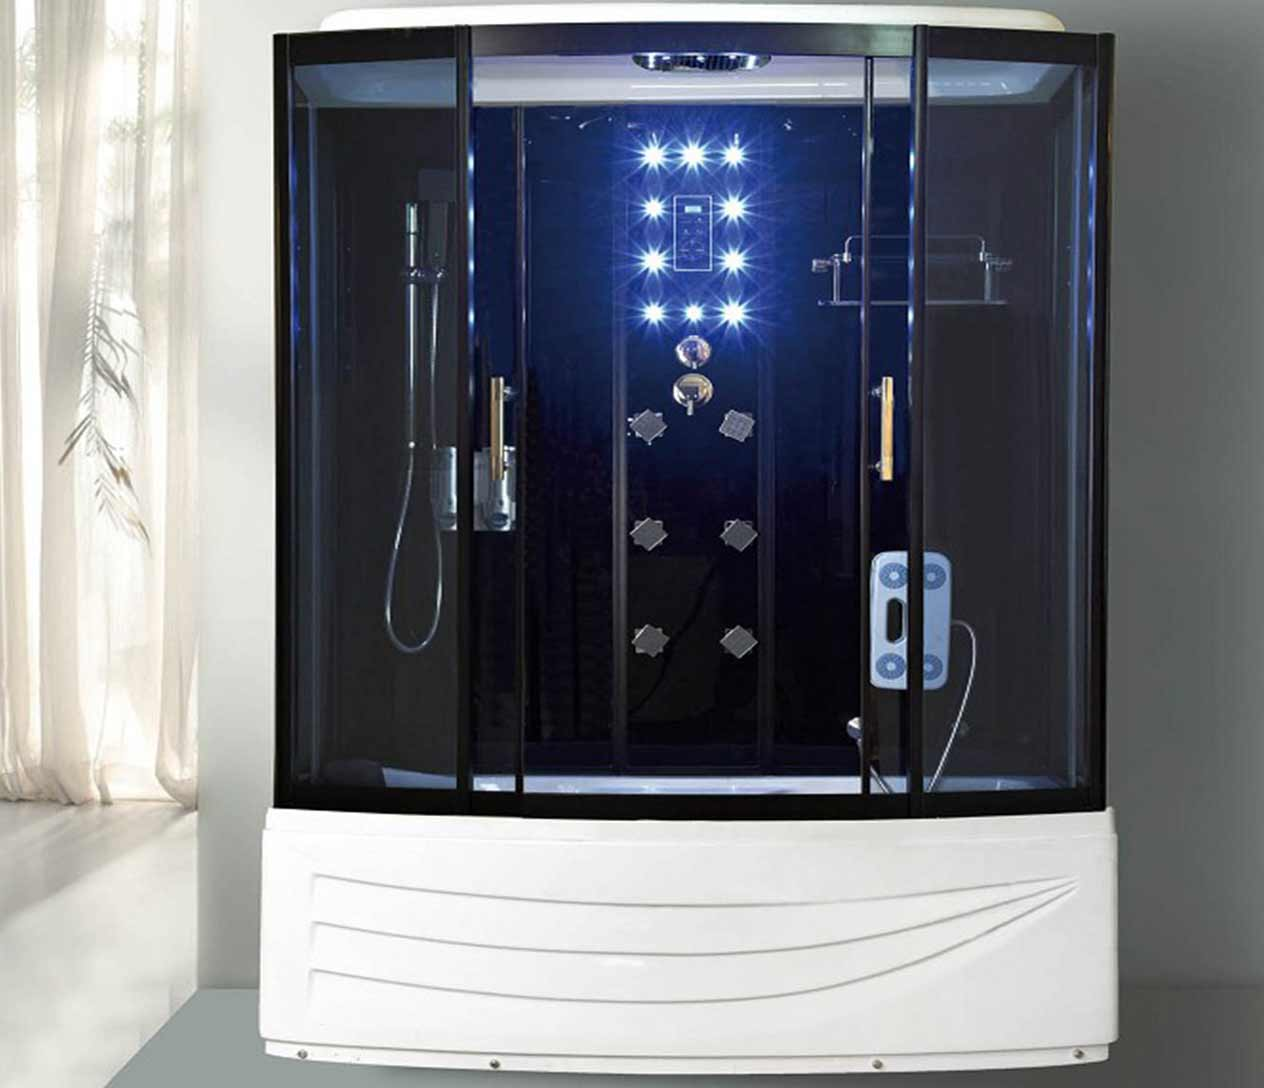 E 26 Steam Shower Luxury Spas Inc